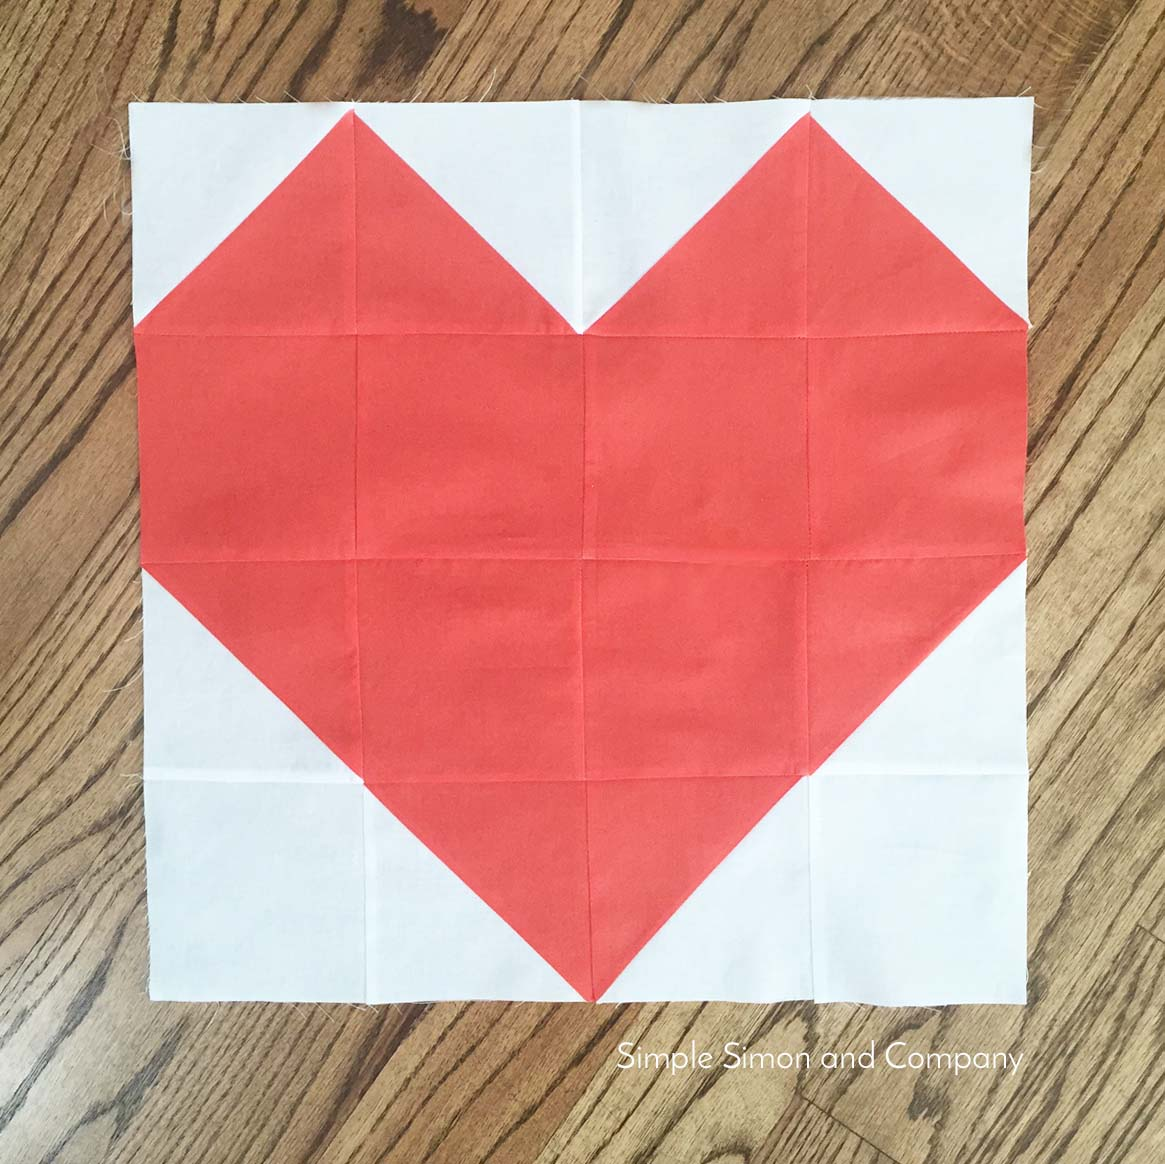 Quilt Block of the Month: Heart Quilt Block - Simple Simon and Company